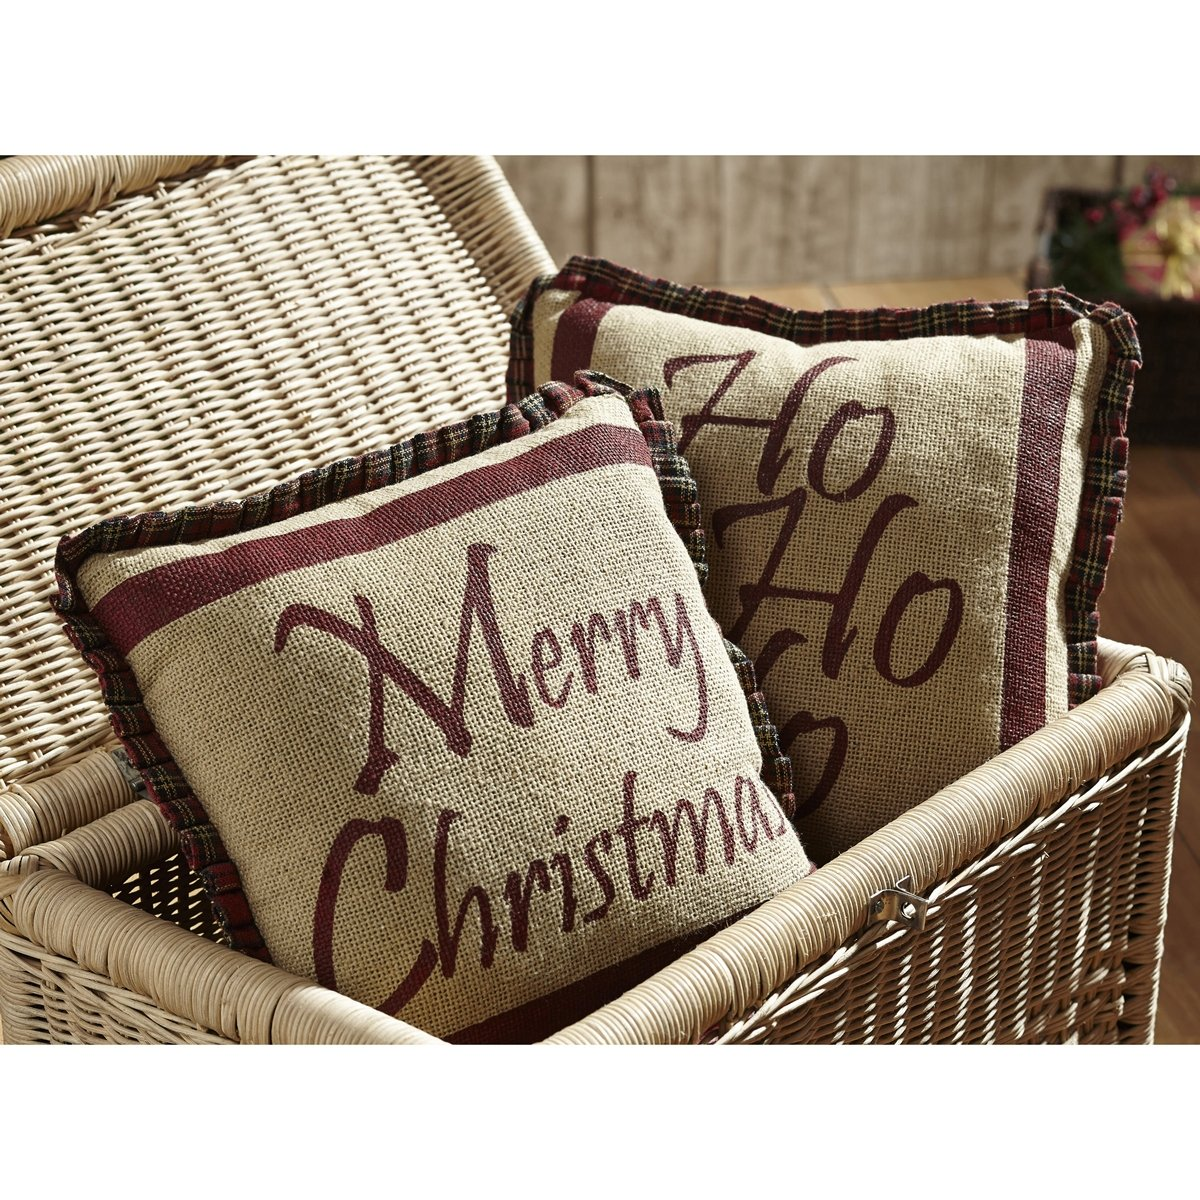 Tartan Holiday Pillow Set of 2 12x12 - Christmas Holiday Decorations